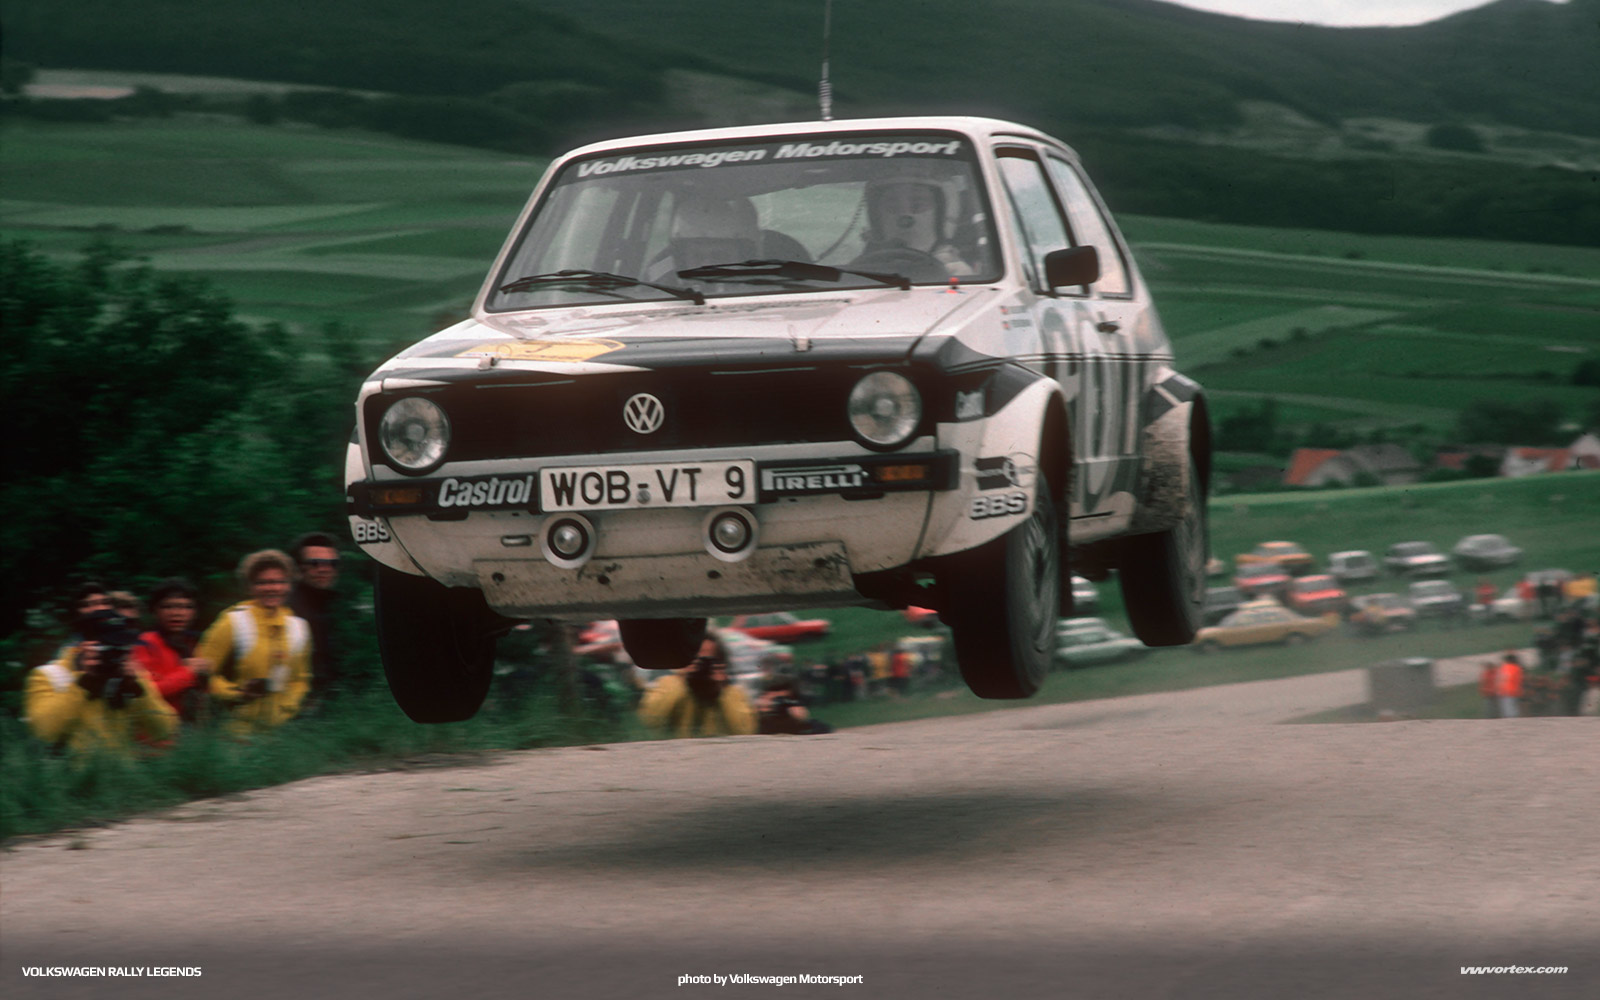 volkswagen rally legends 403 600x375